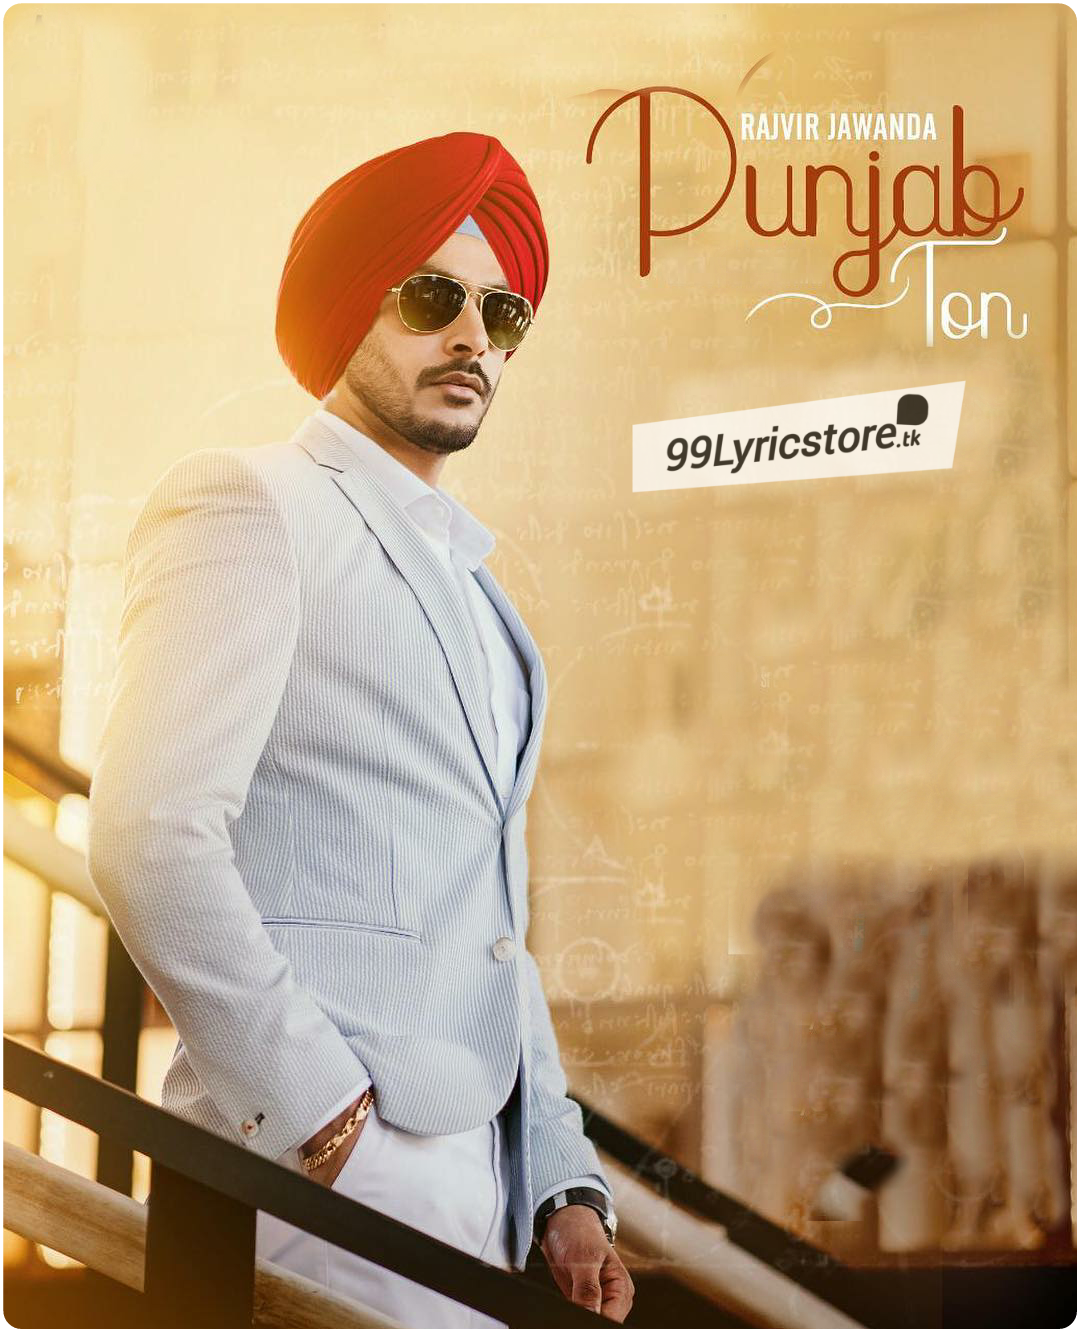 Punjab Ton Punjabi Song Lyrics, Latest Punjabi Song Punjab Ton Lyrics, Rajvir Jawanda Punjab Ton Punjabi Song Lyrics, Punjab Ton Lyrics Rajvir Jawanda, Punjabi Song Rajvir Jawanda Lyrics, Latest Punjabi Song 2018-2019, Punjabi Song Punjab Ton Lyrics, Punjab Ton Punjabi Song images, Rajvir Jawanda Punjab Ton Punjabi Song images, Punjab Ton Song images,